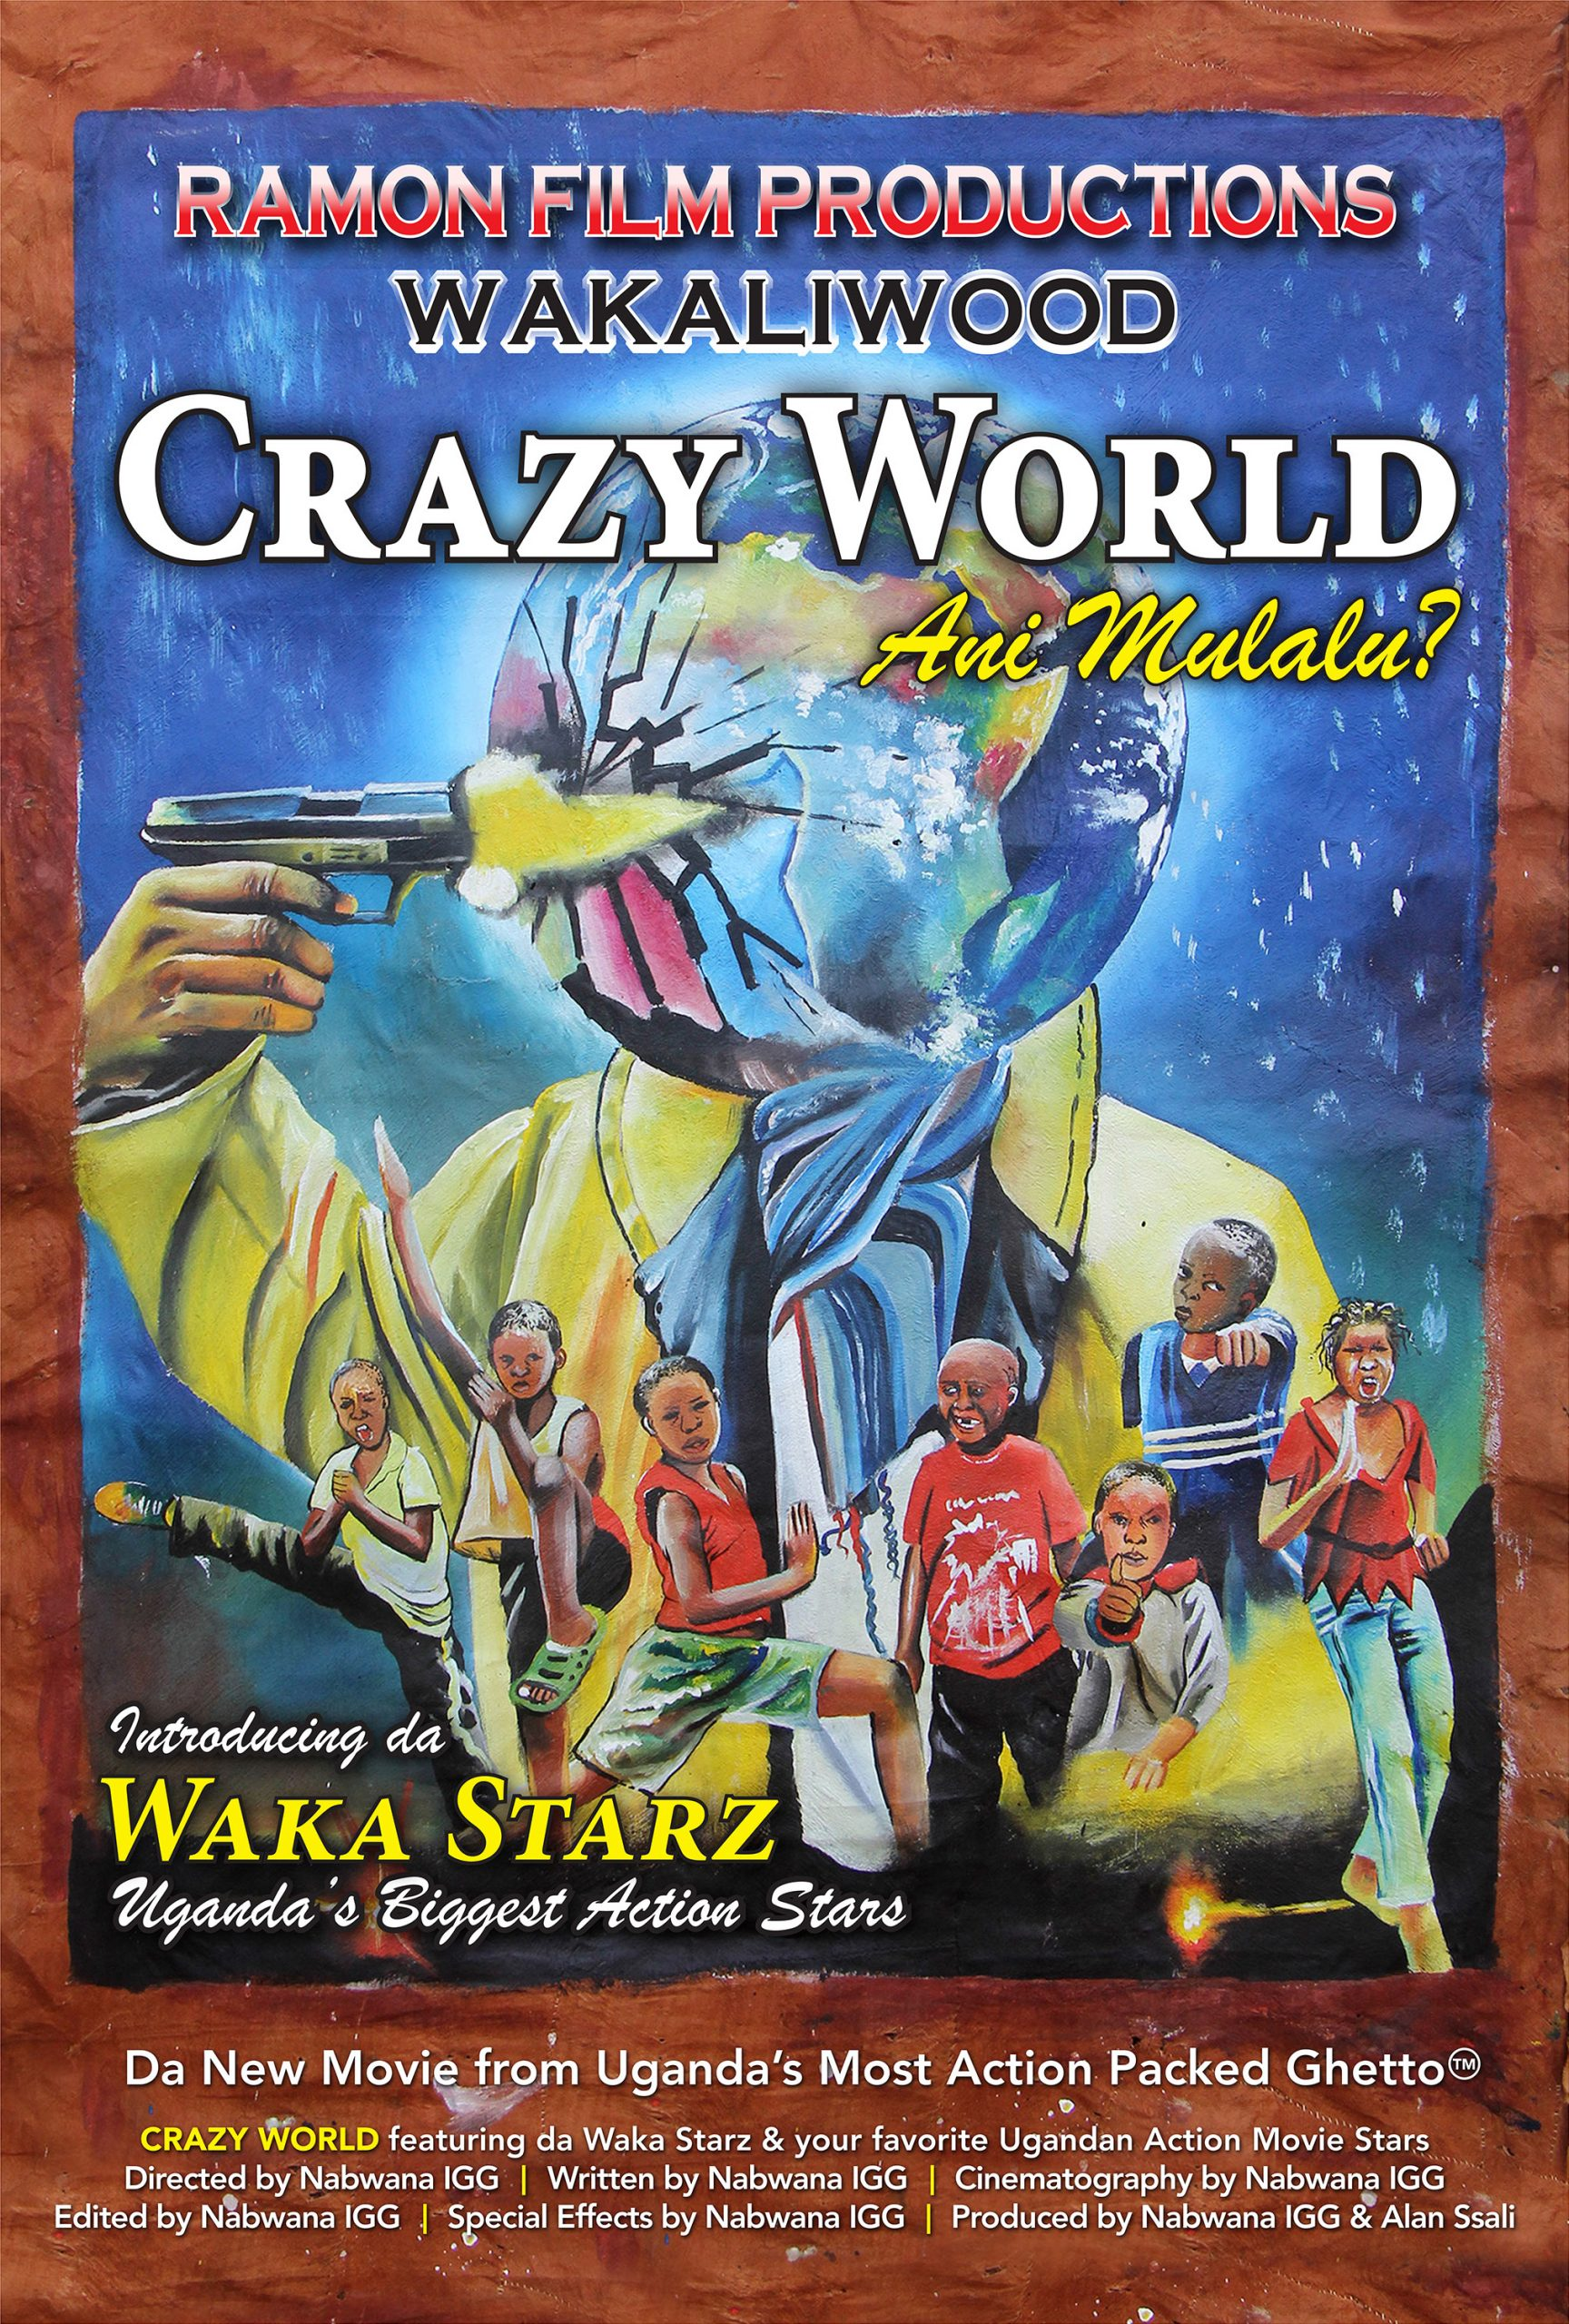 Wakaliwood's CRAZY WORLD Now Available Exclusively on Alamo on Demand